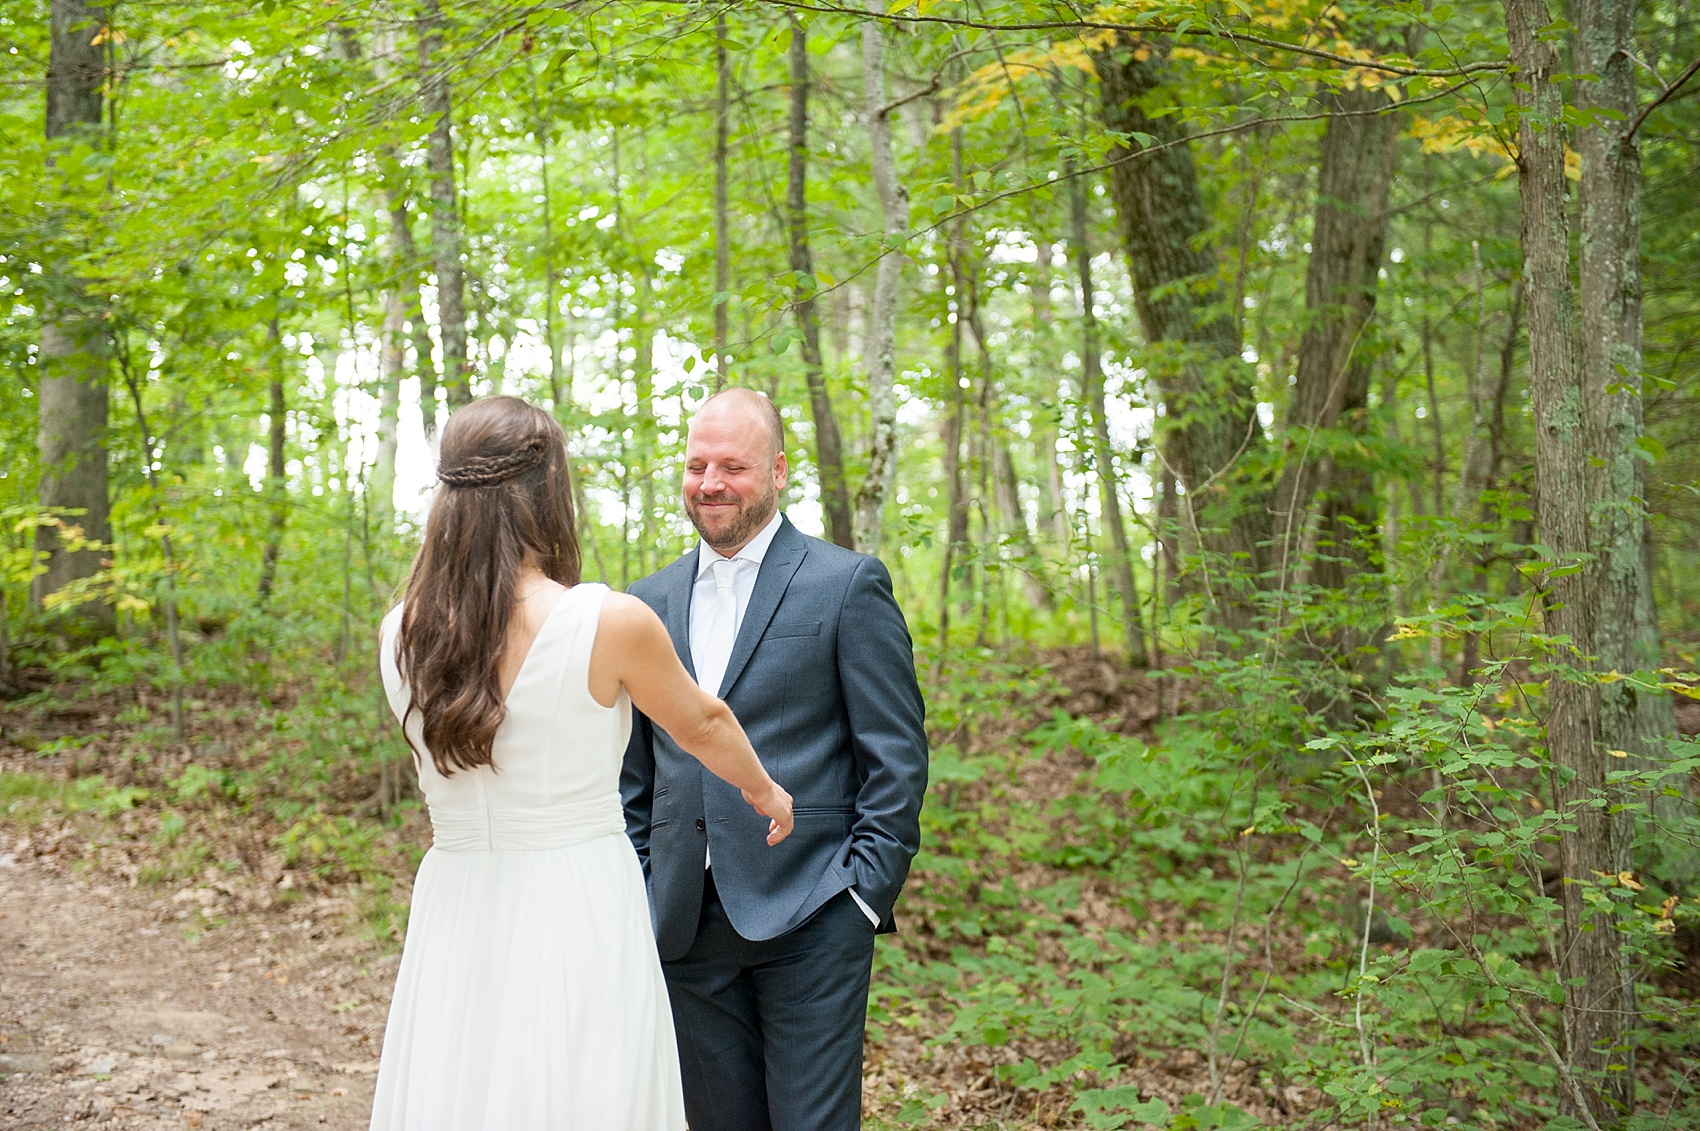 First look for rustic Massachusetts Berkshires wedding at Camp Wa Wa Segowea. Photos by Mikkel Paige Photography, destination wedding photographer.